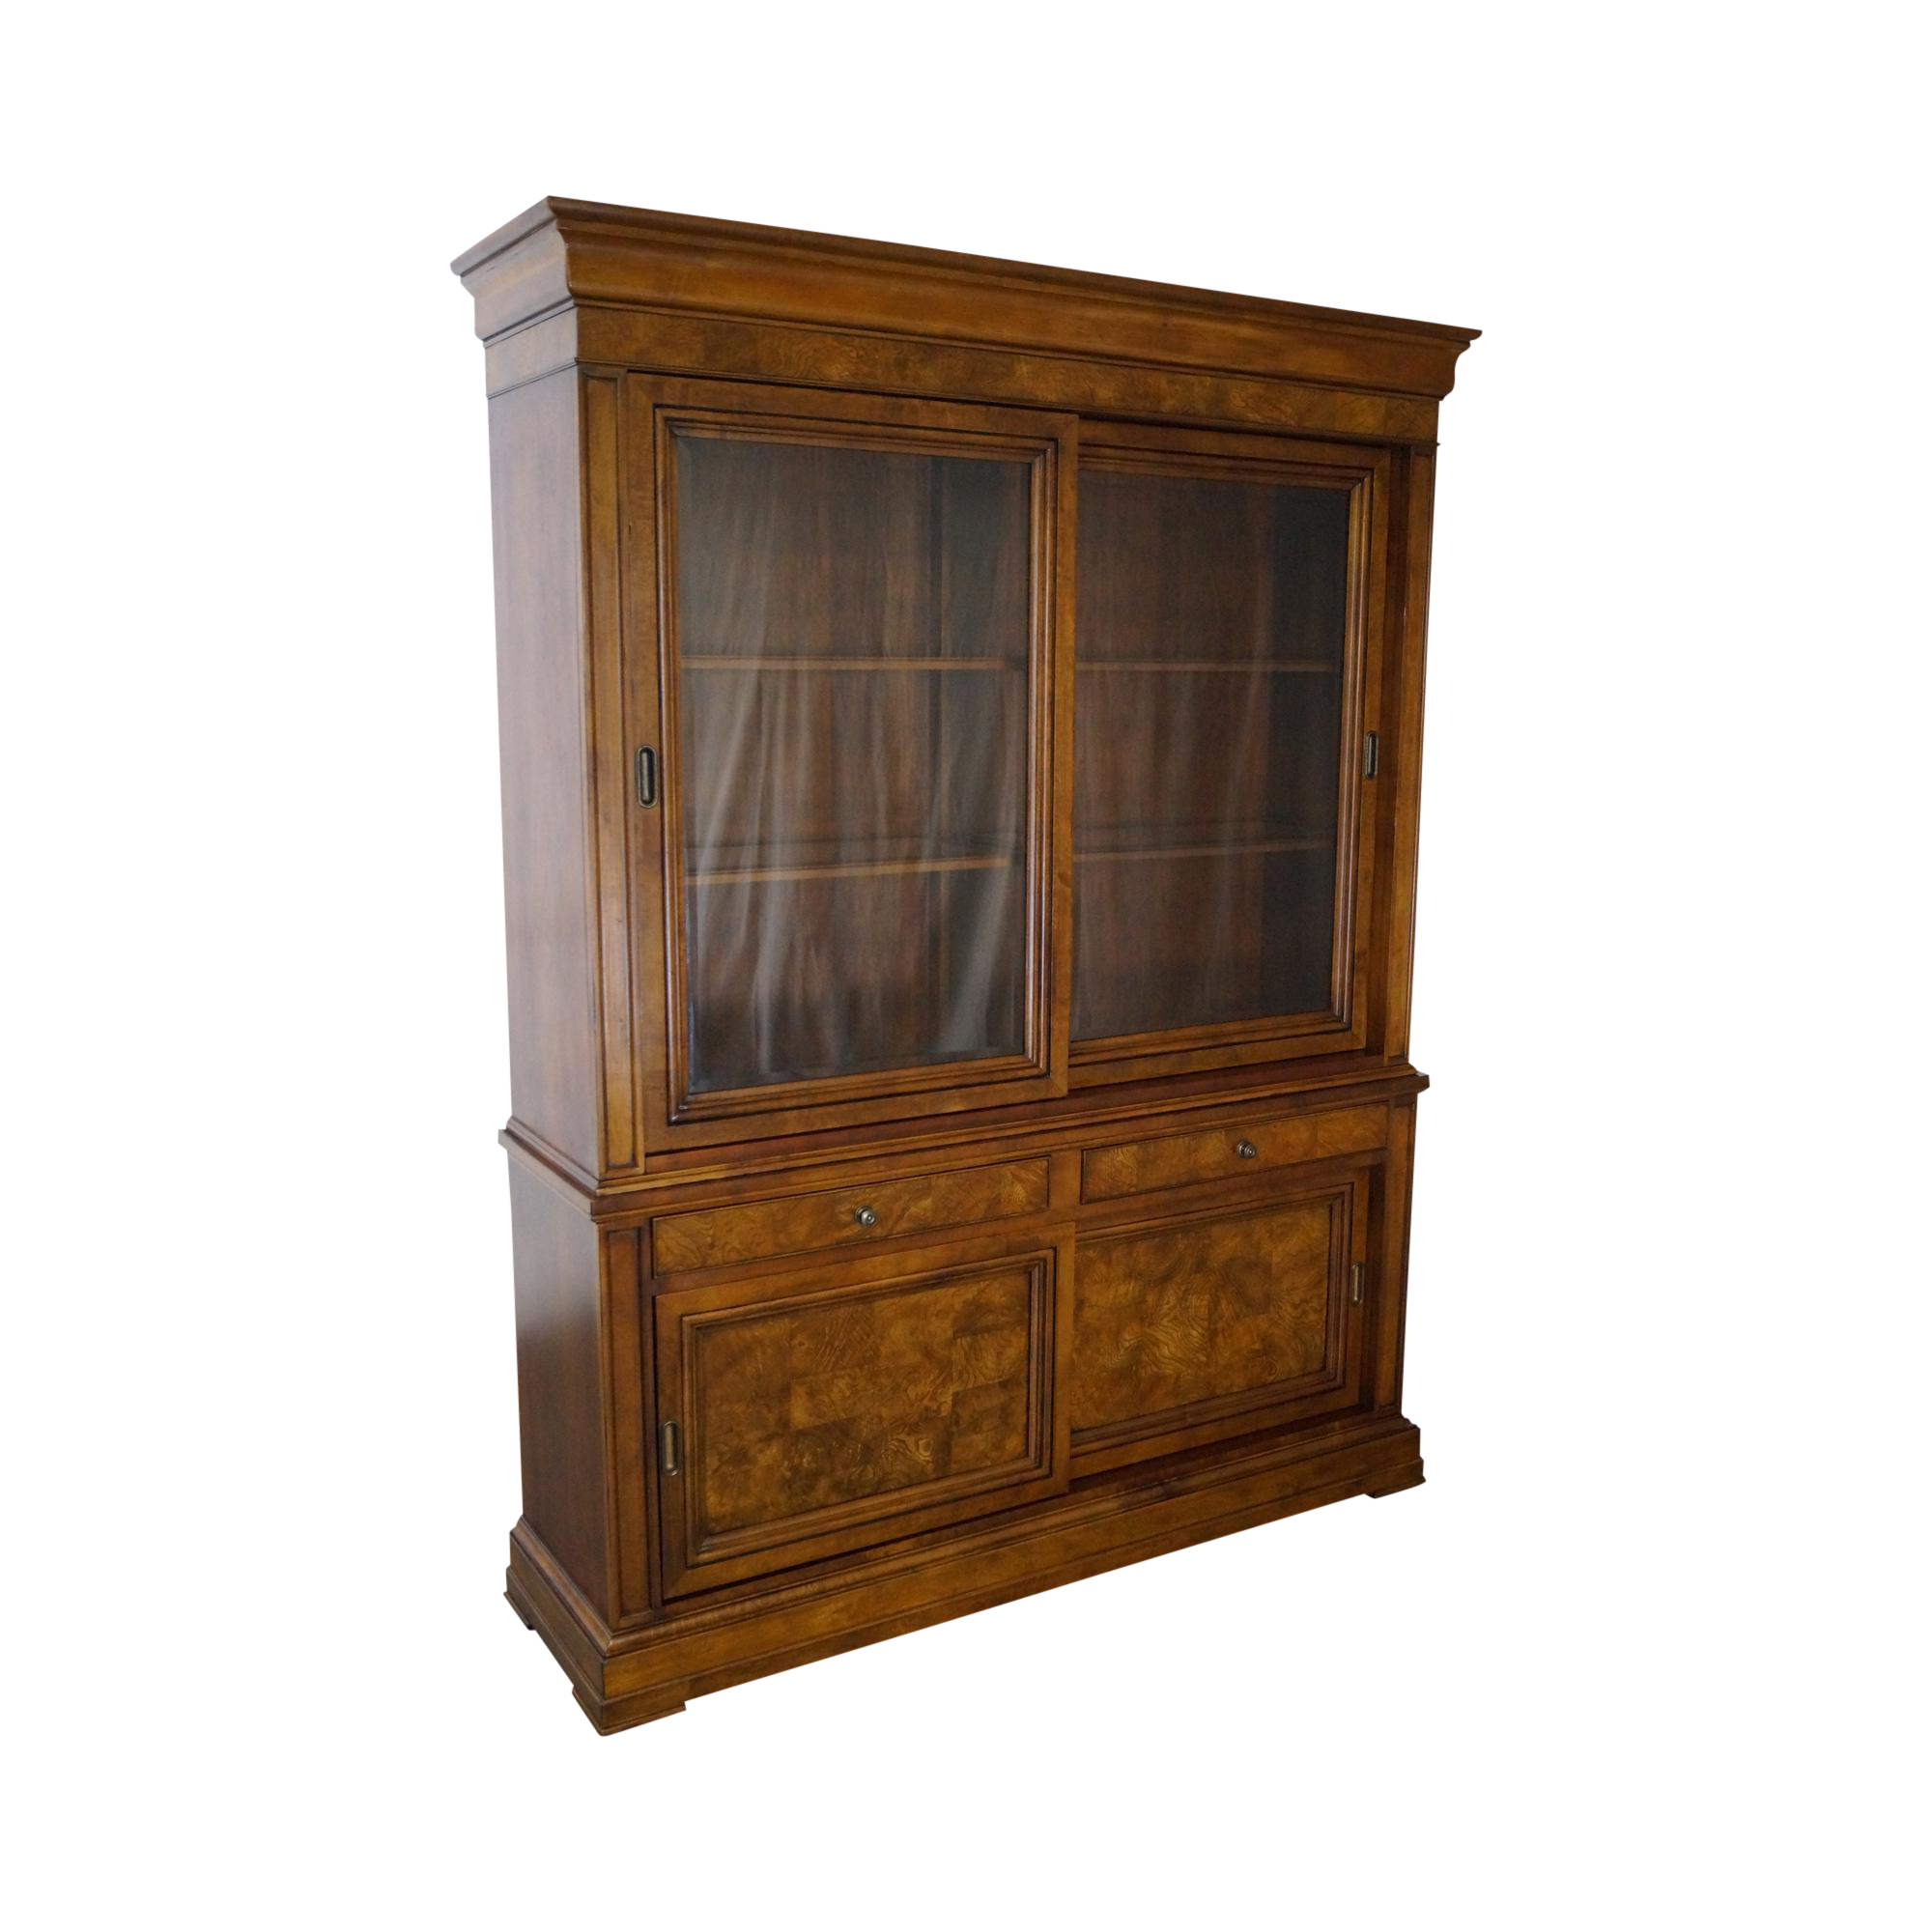 ethan cabinet bookcasehutchfiling inspirations magnificent bookcases furniture allen images home